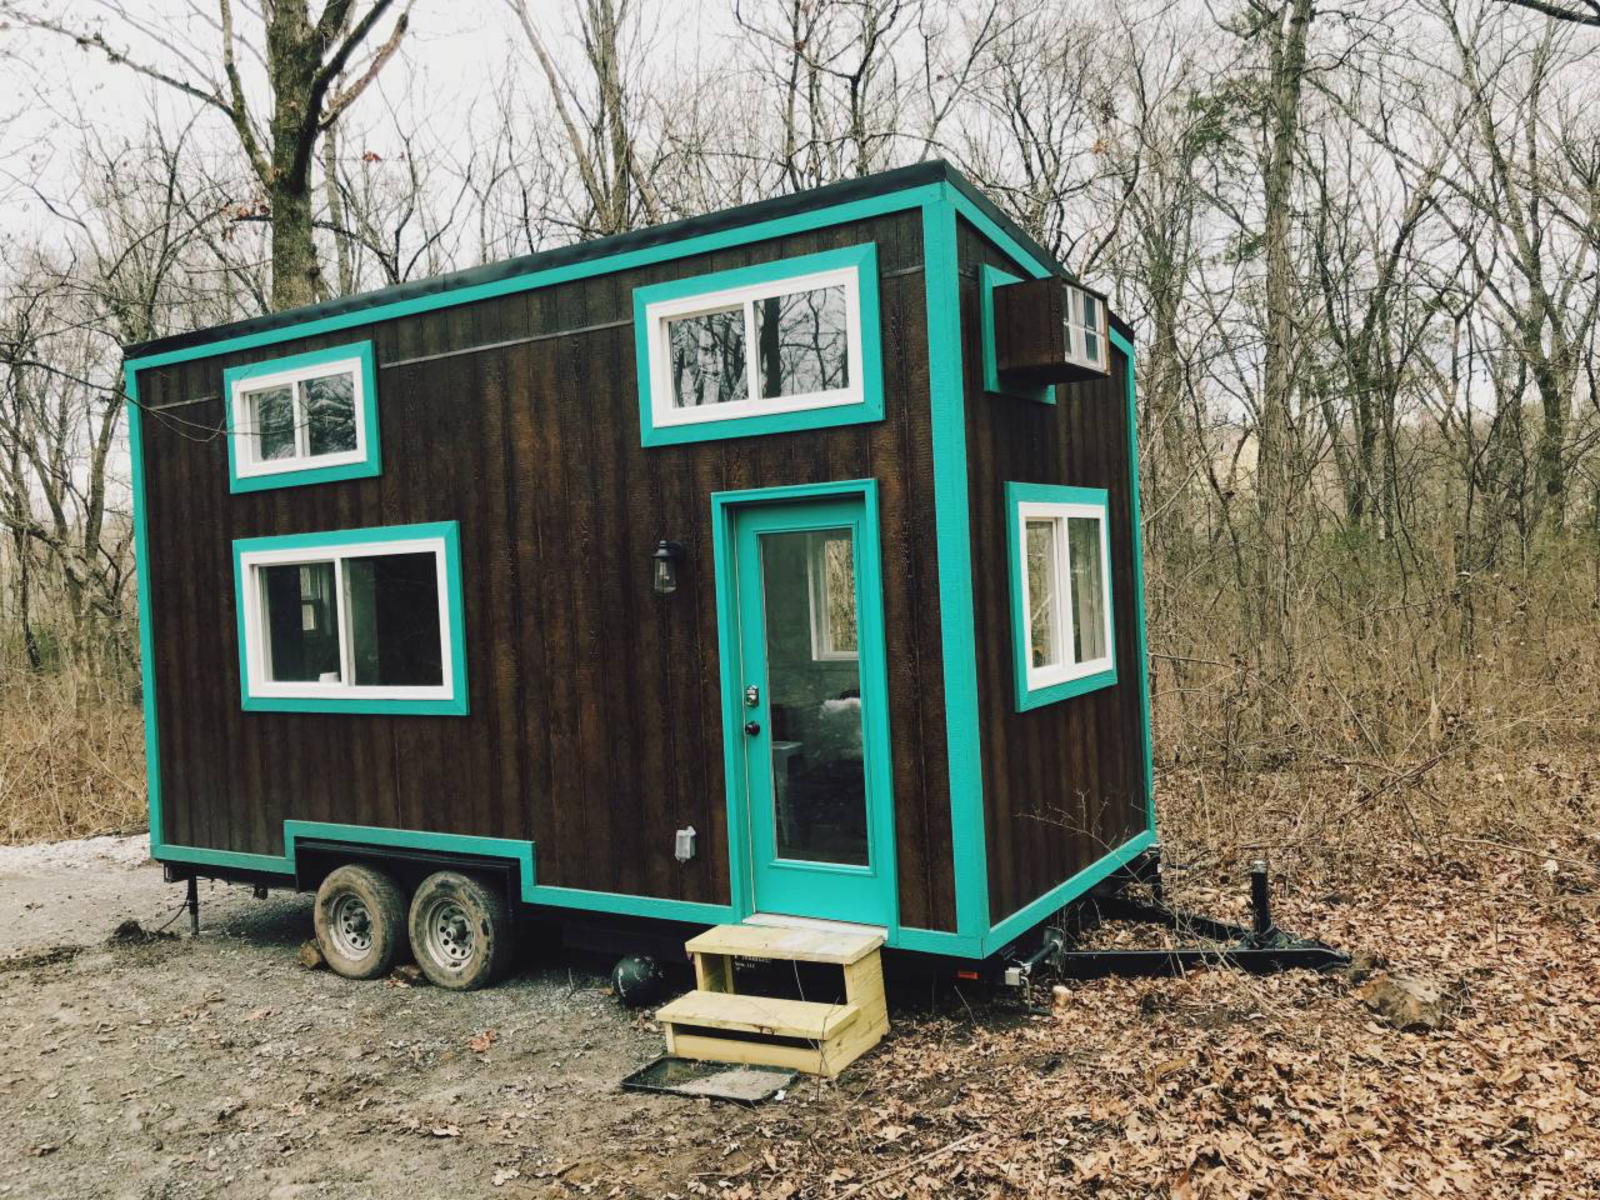 Try It Tiny also has pop-up tiny house hotels, where they bring tiny houses to events around the country for attendees to stay in on-site.